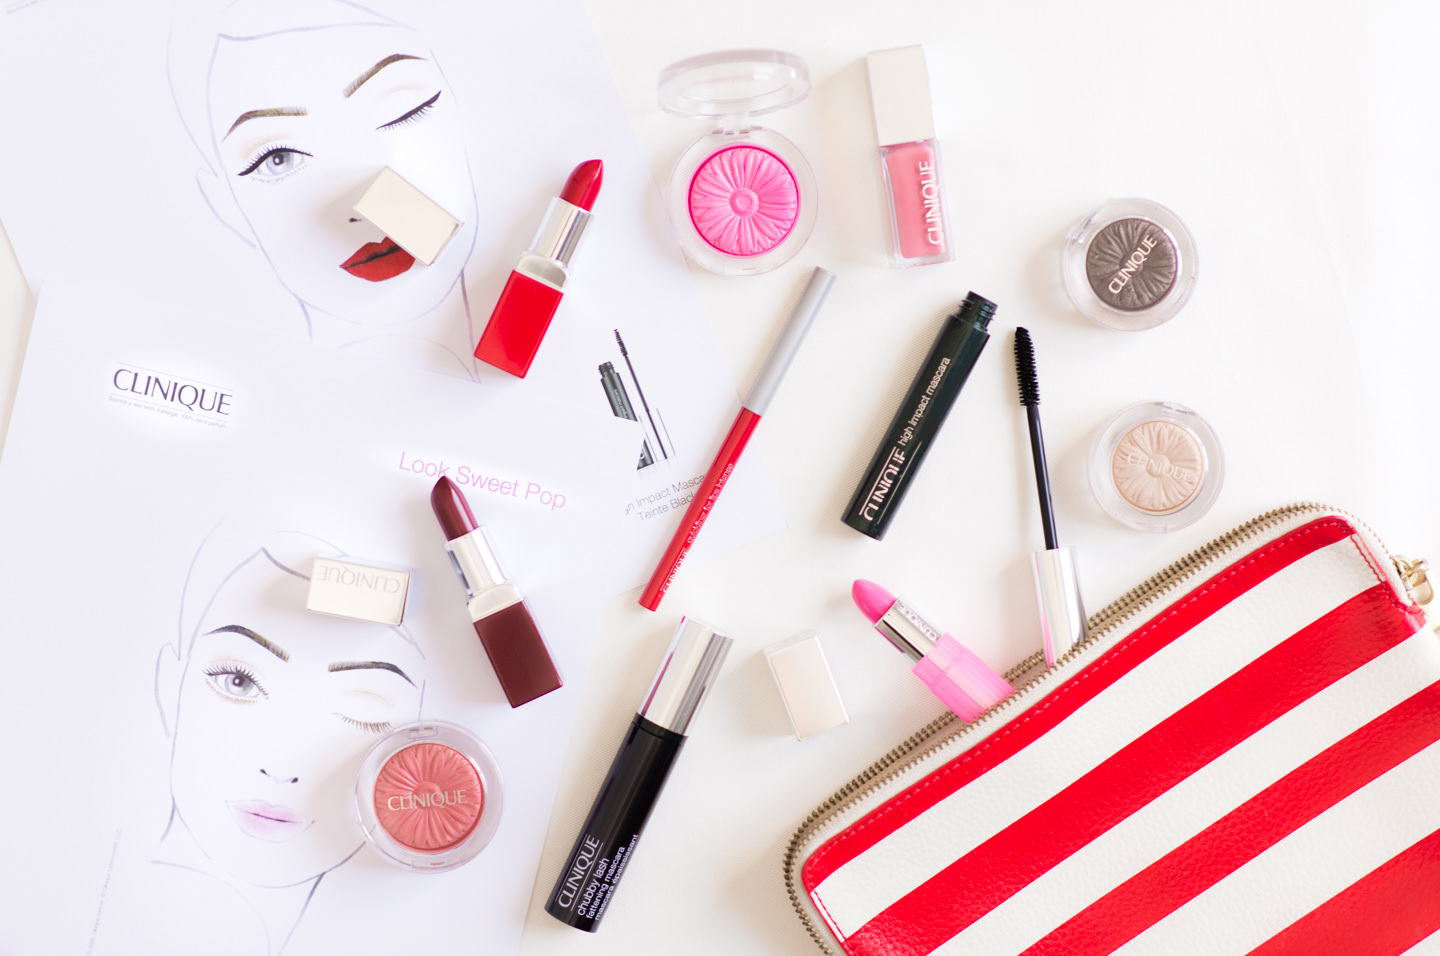 Blog-Mode-And-The-City-Beaute-Clinique-Play-With-Pop-Flatlay1